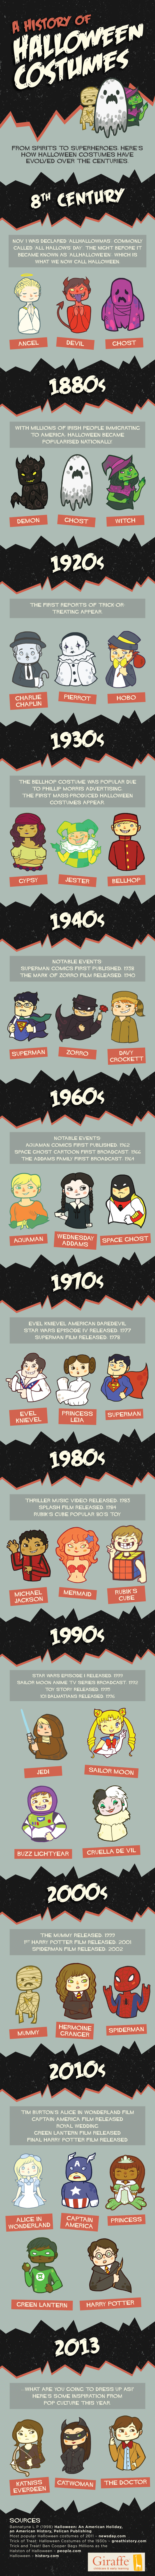 History of Halloween Costumes [Infographic]